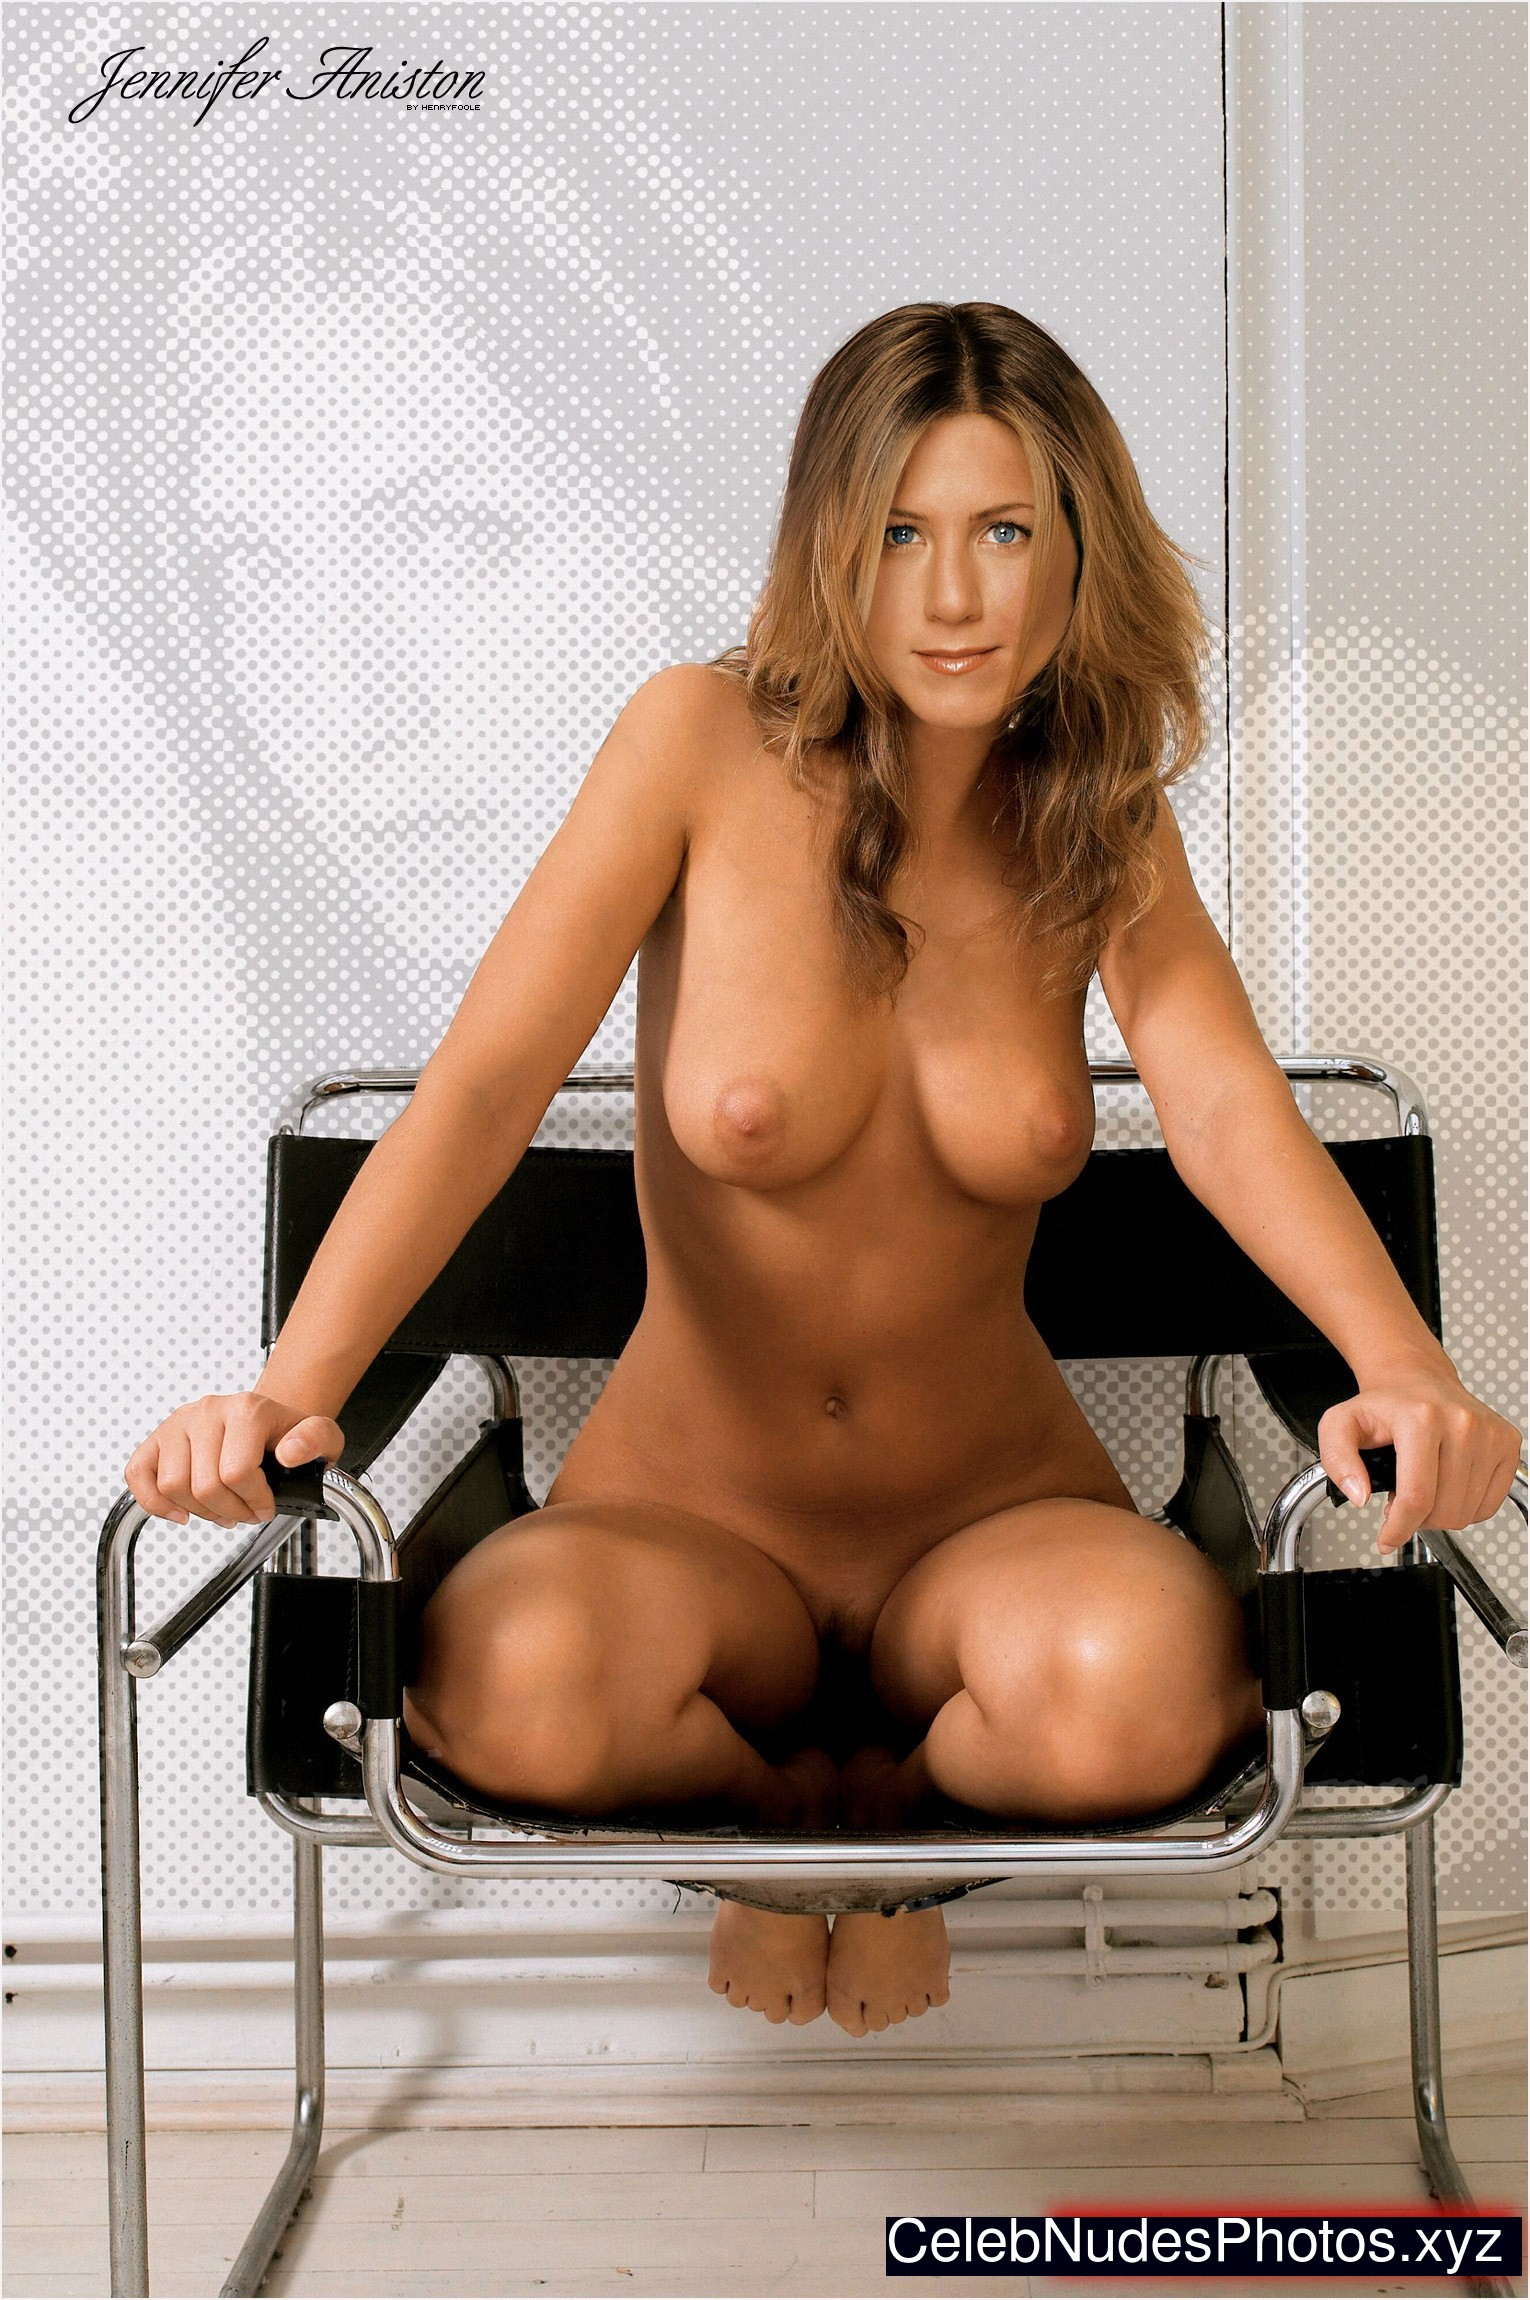 Of aniston jennifer photos naked